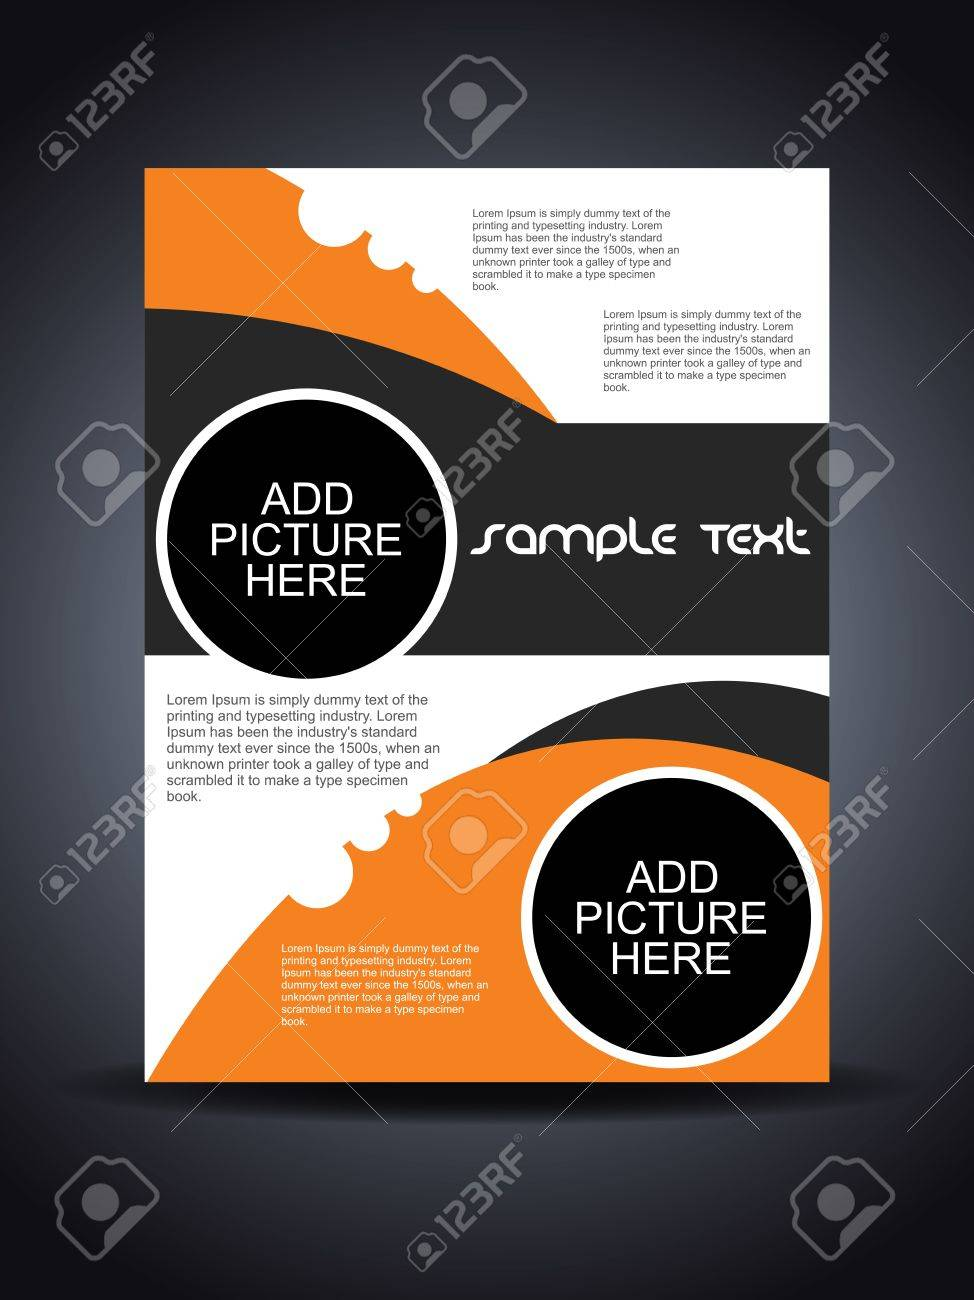 Presentation of creative flyer or cover design. Stock Vector - 16505427